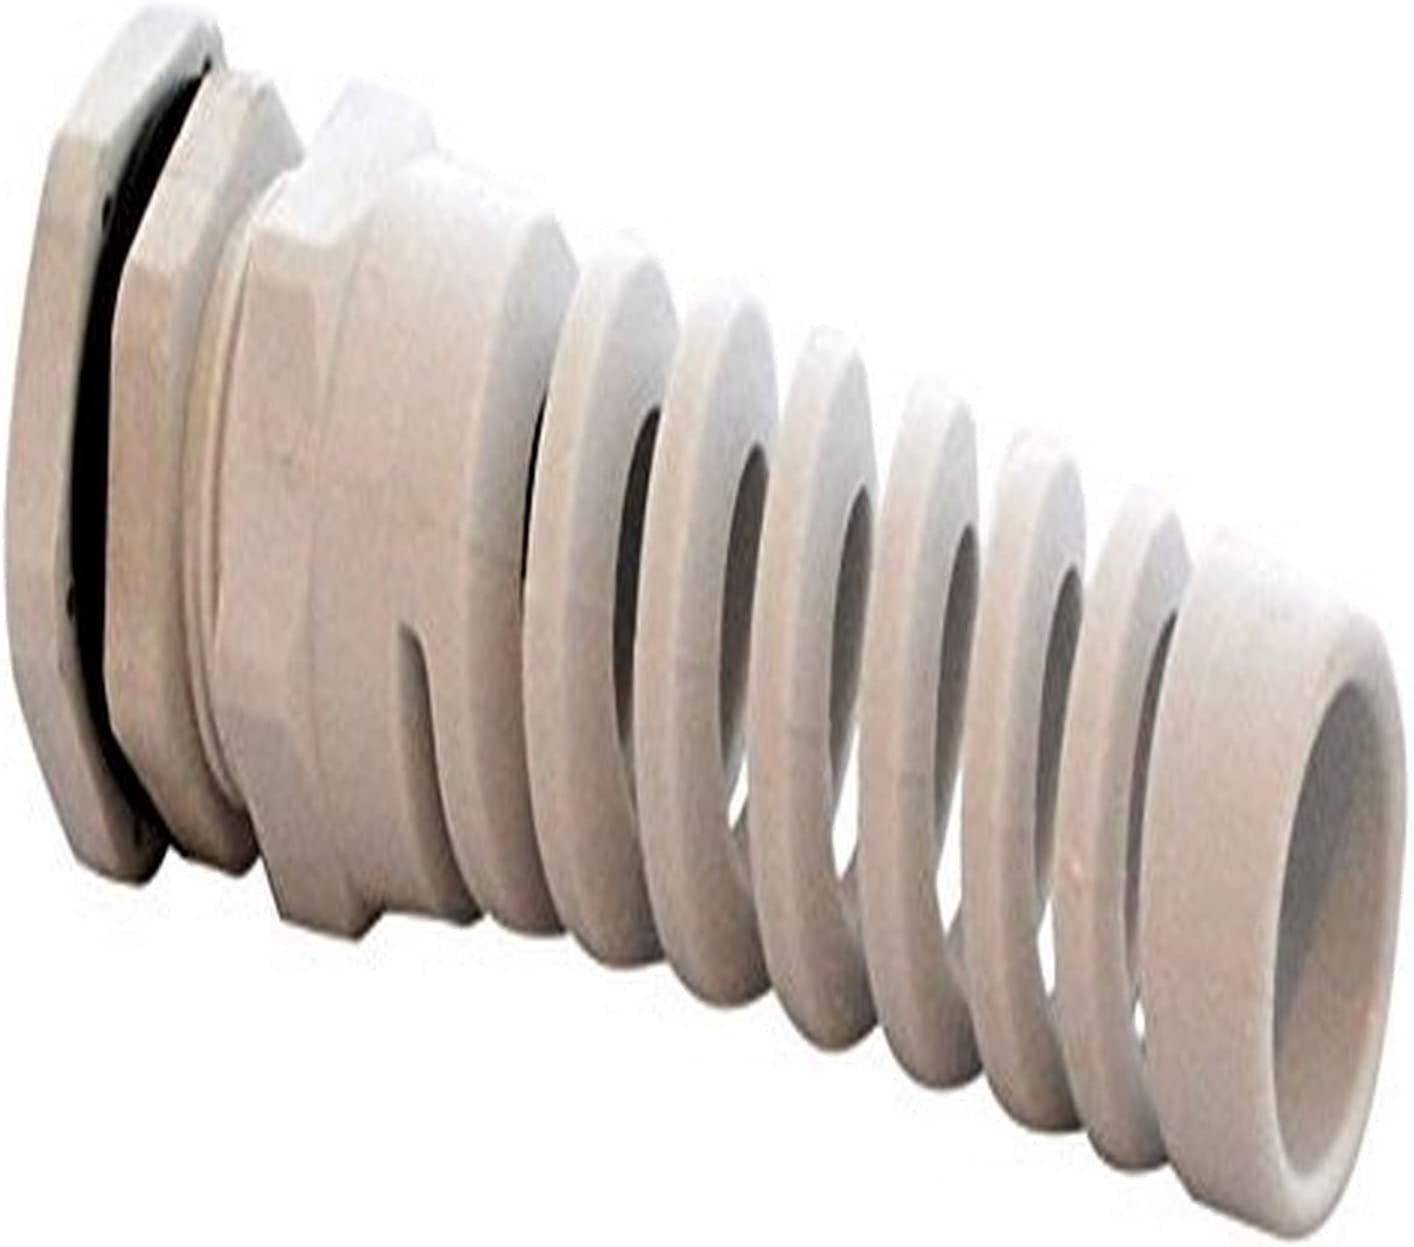 Grey BUD Industries IPG22221BPG IP66 TUV Bend Proof Nylon Cable Gland Fits Round Wire from 0.39 to 0.55